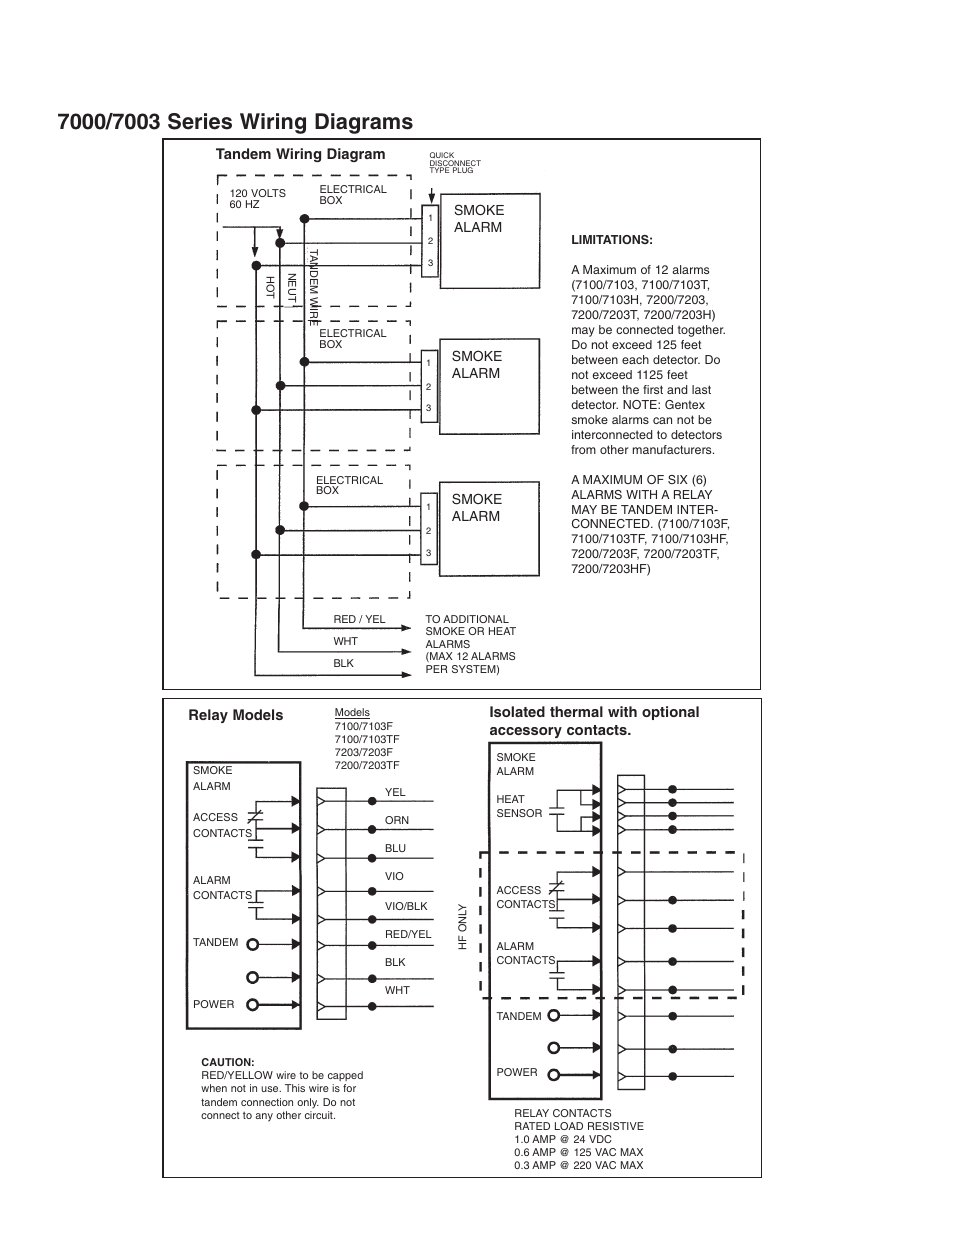 Gentex Wiring Diagram Diagrams 177 Mirror Tandem Relay Models Isolated Thermal Smoke Alarm